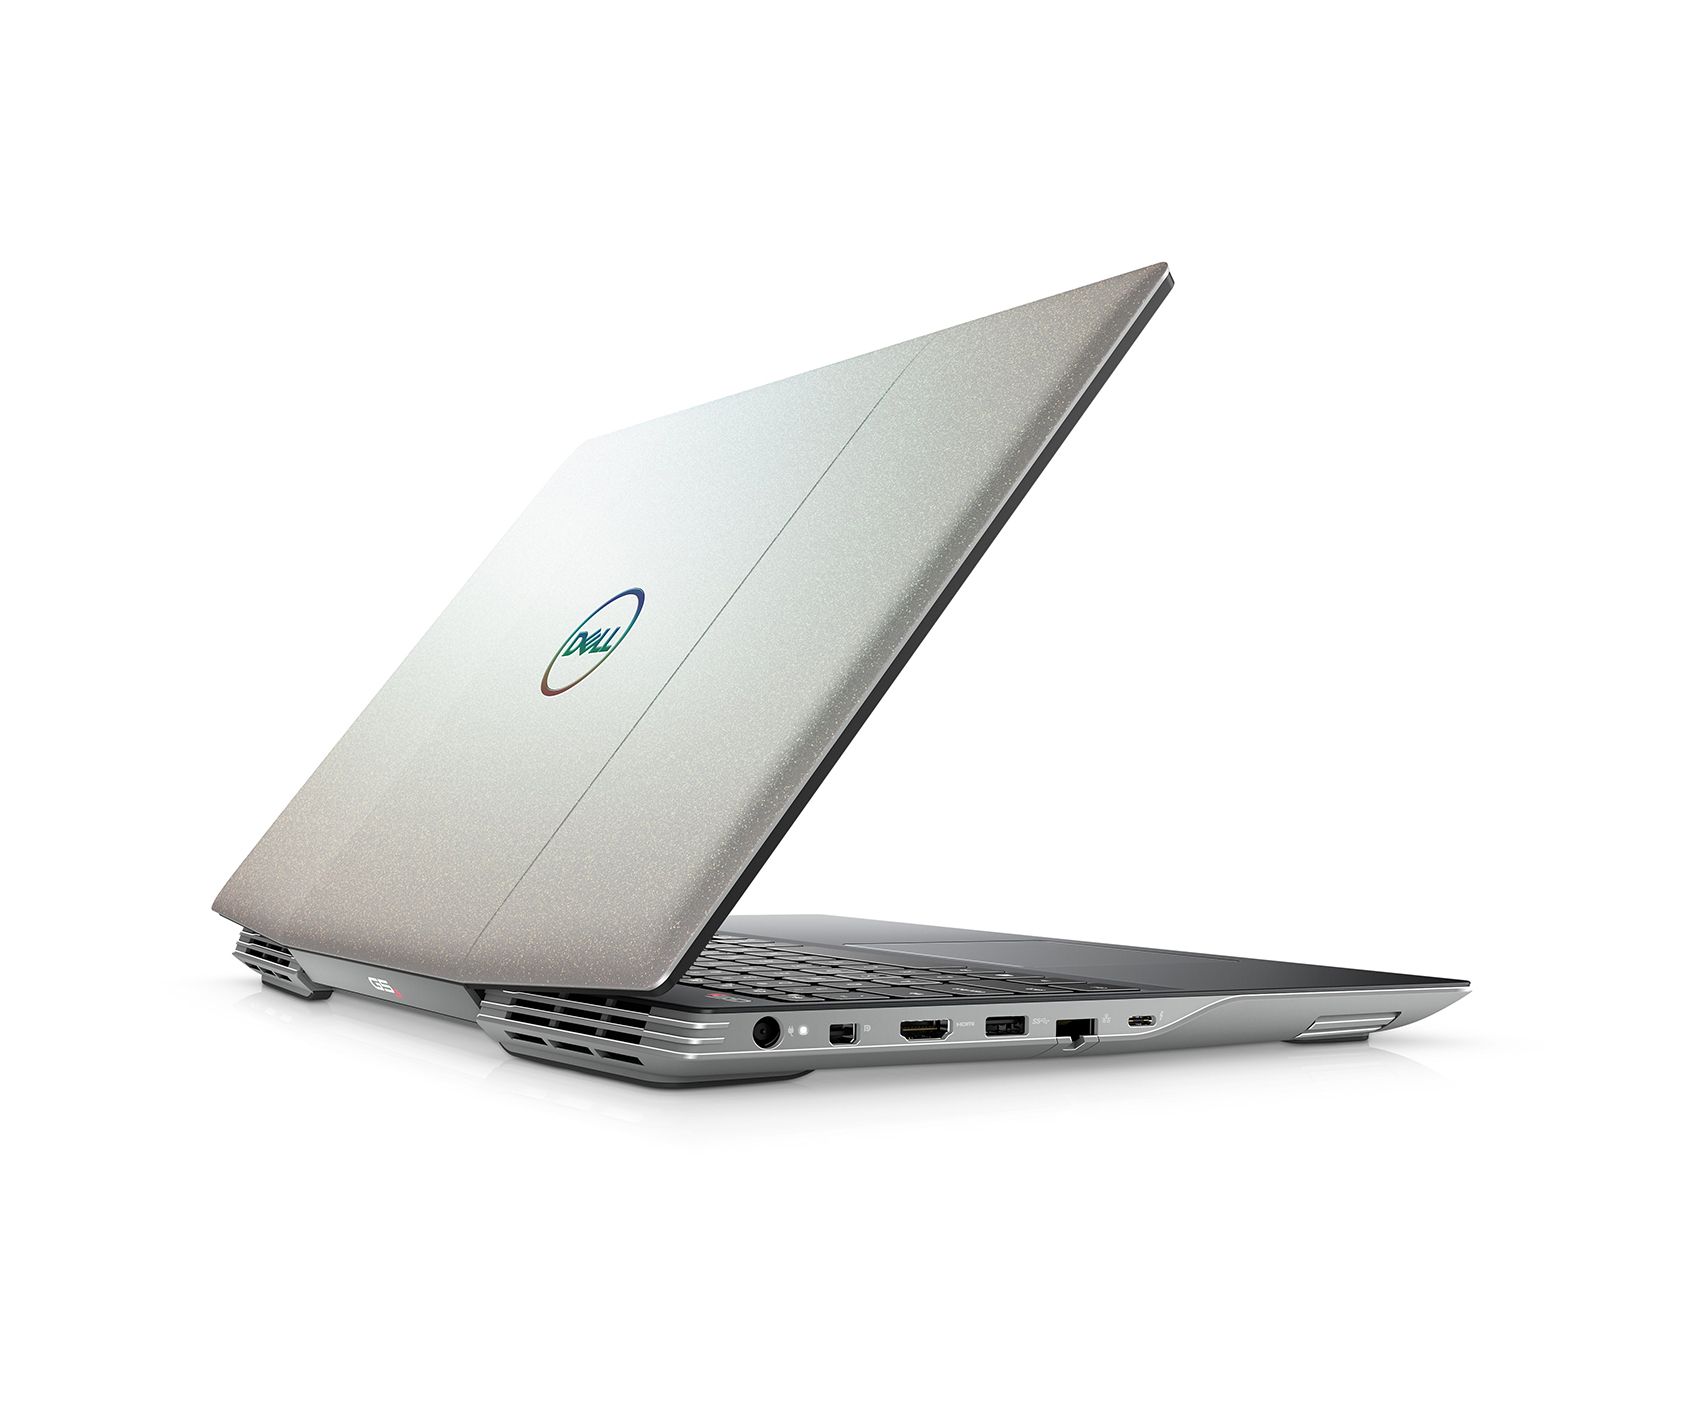 Dell G5 15 SE Gaming Laptop